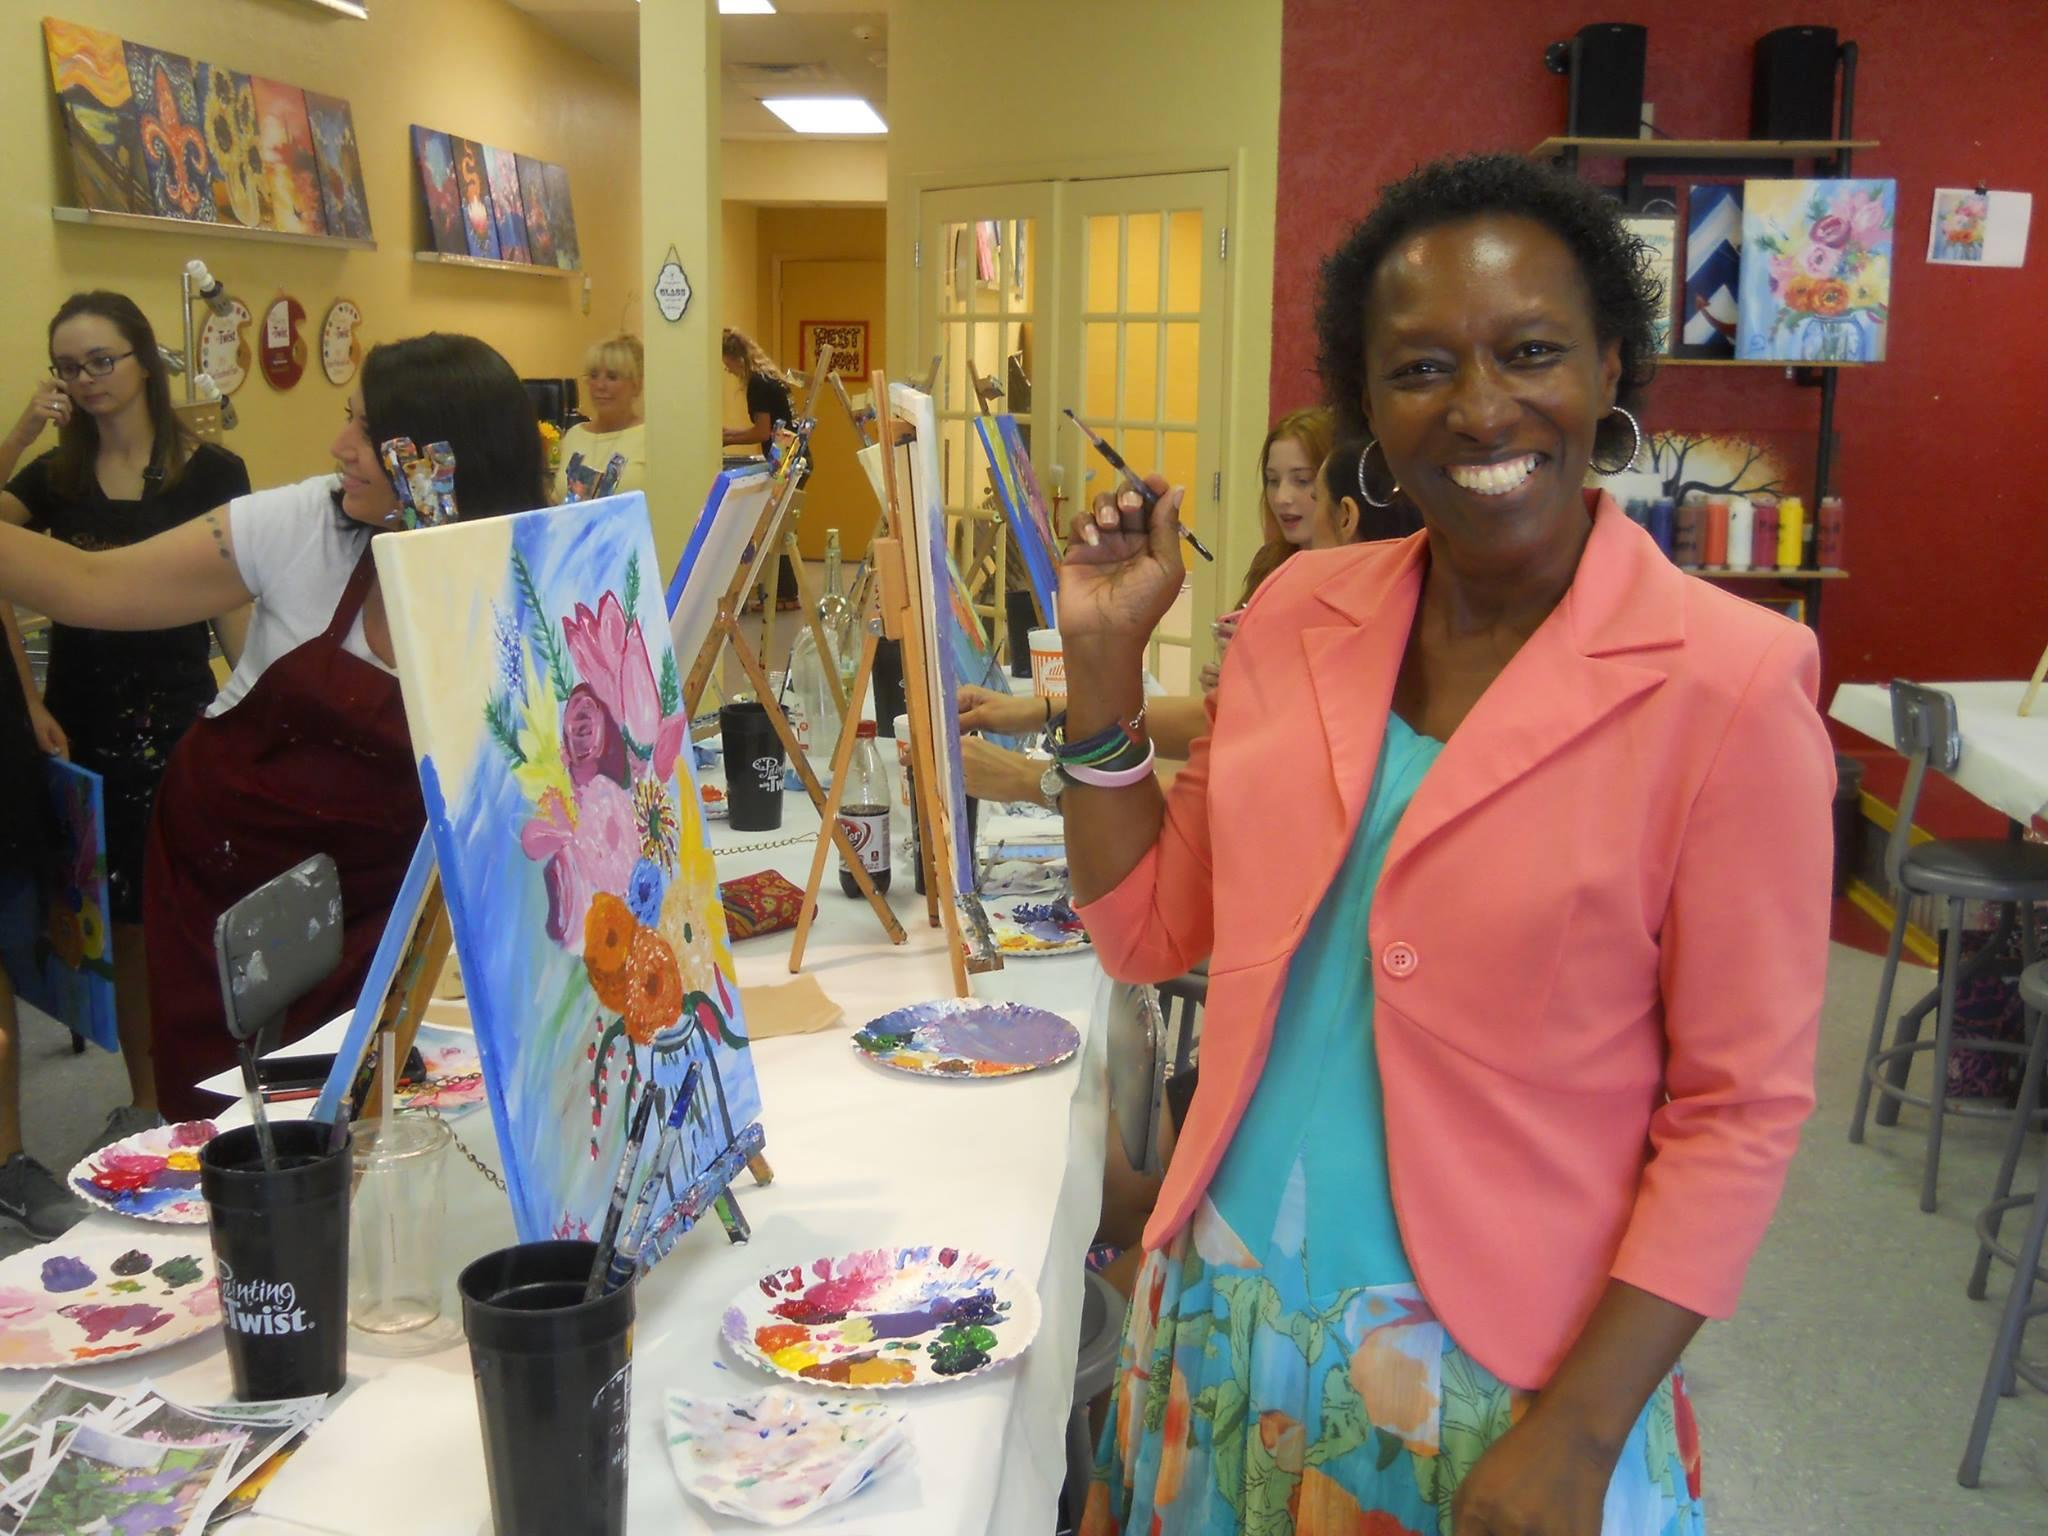 Painting with a twist in beaumont tx 77706 for Painting with a twist chicago